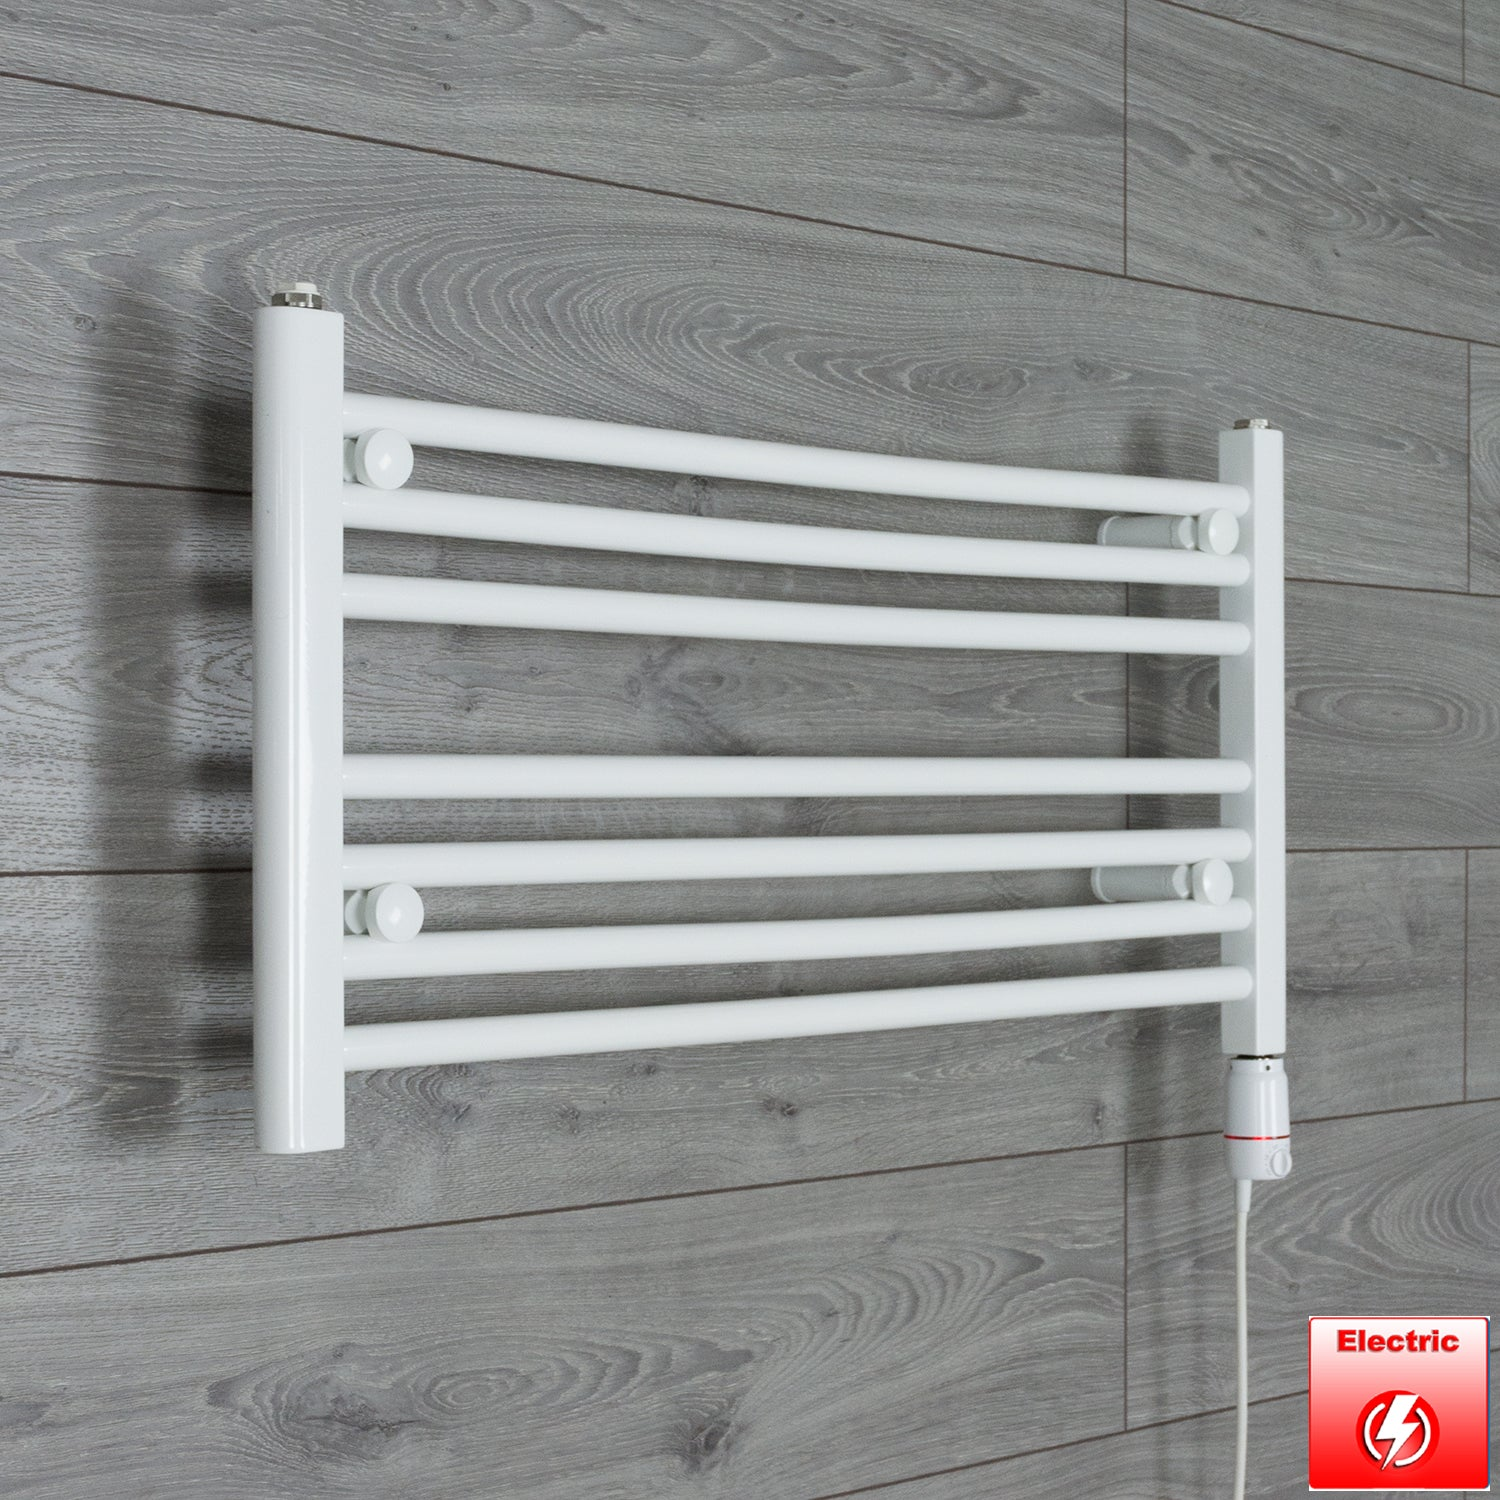 700mm Wide 400mm High Flat WHITE Pre-Filled Electric Heated Towel Rail Radiator HTR,GT Thermostatic